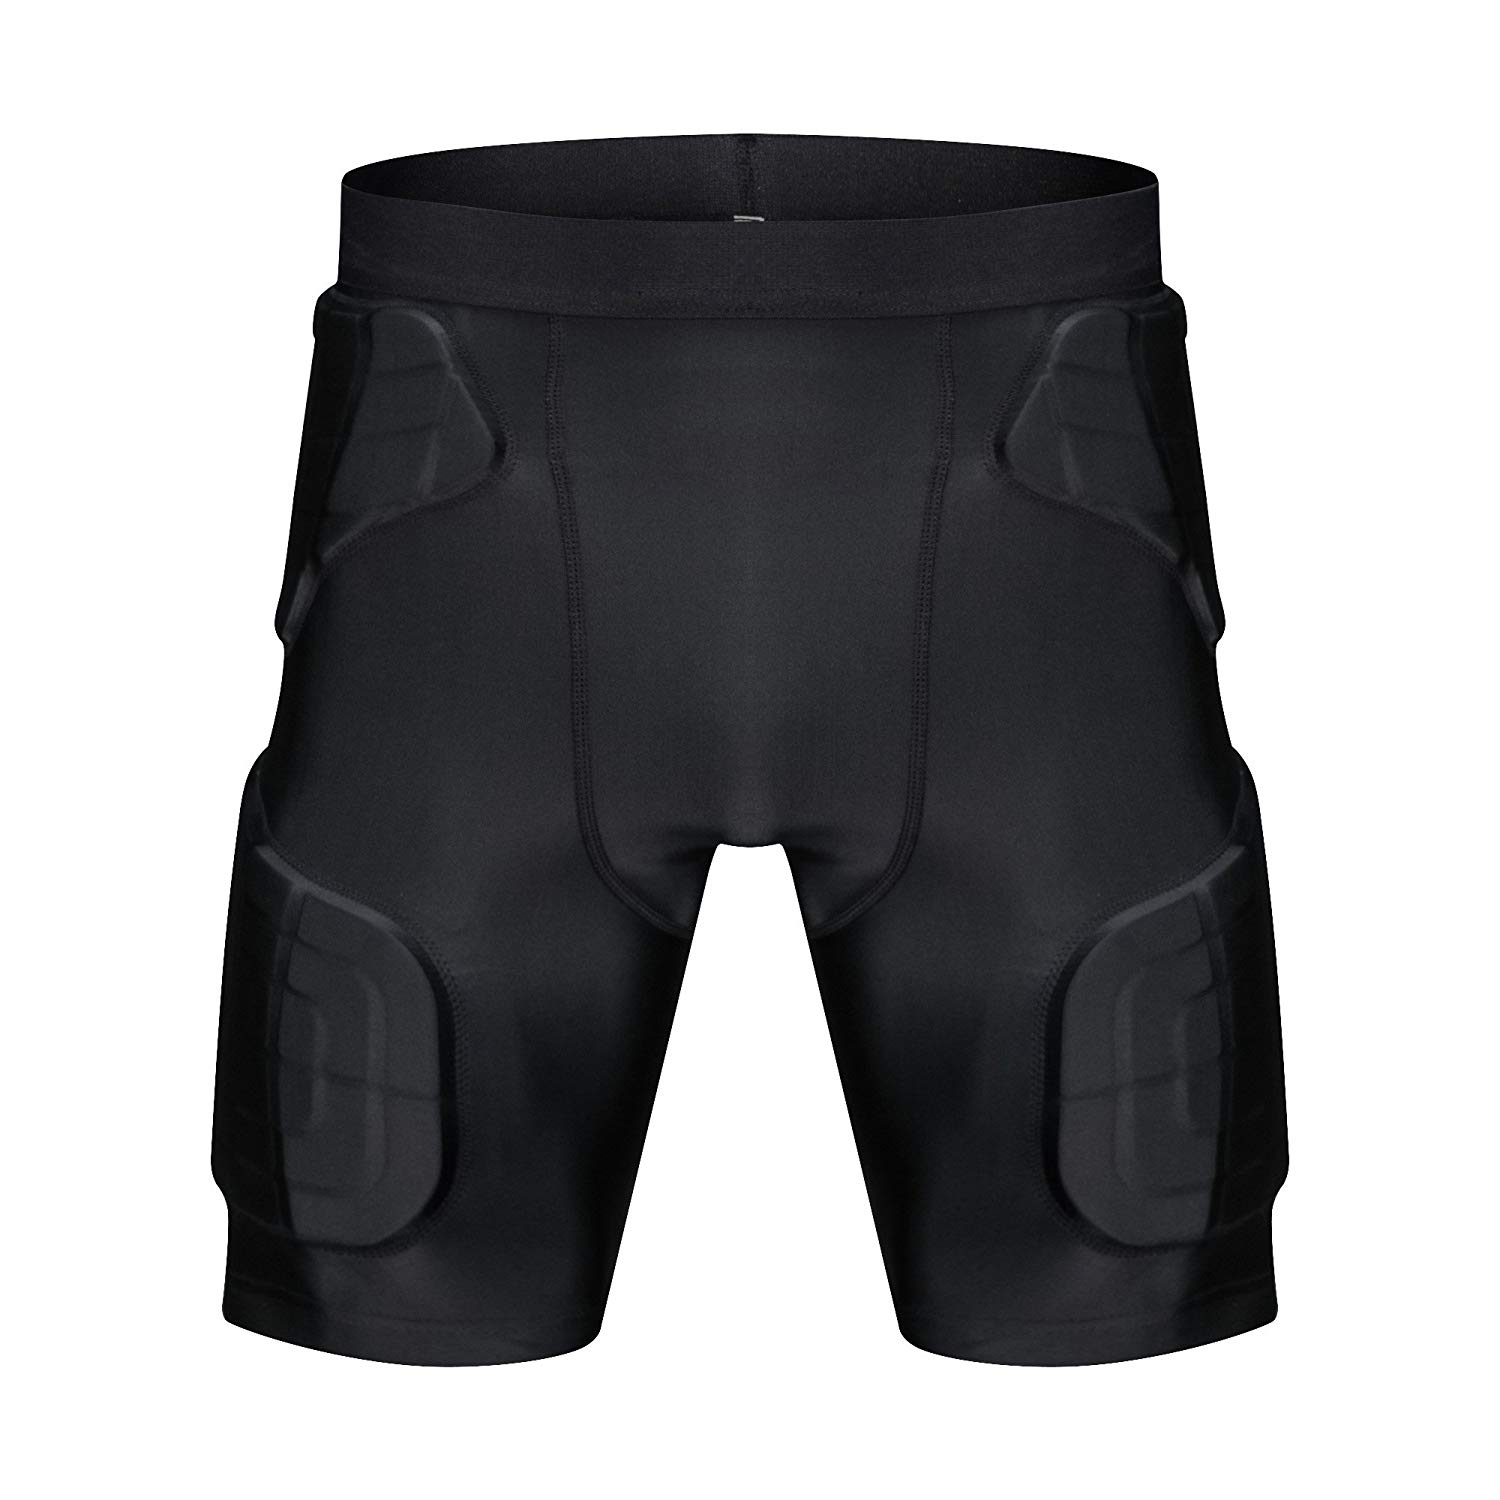 714baa1d40 Get Quotations · TUOY Men s Padded Compression Shorts 5-Pad Football Girdle  Hip Thigh Protector